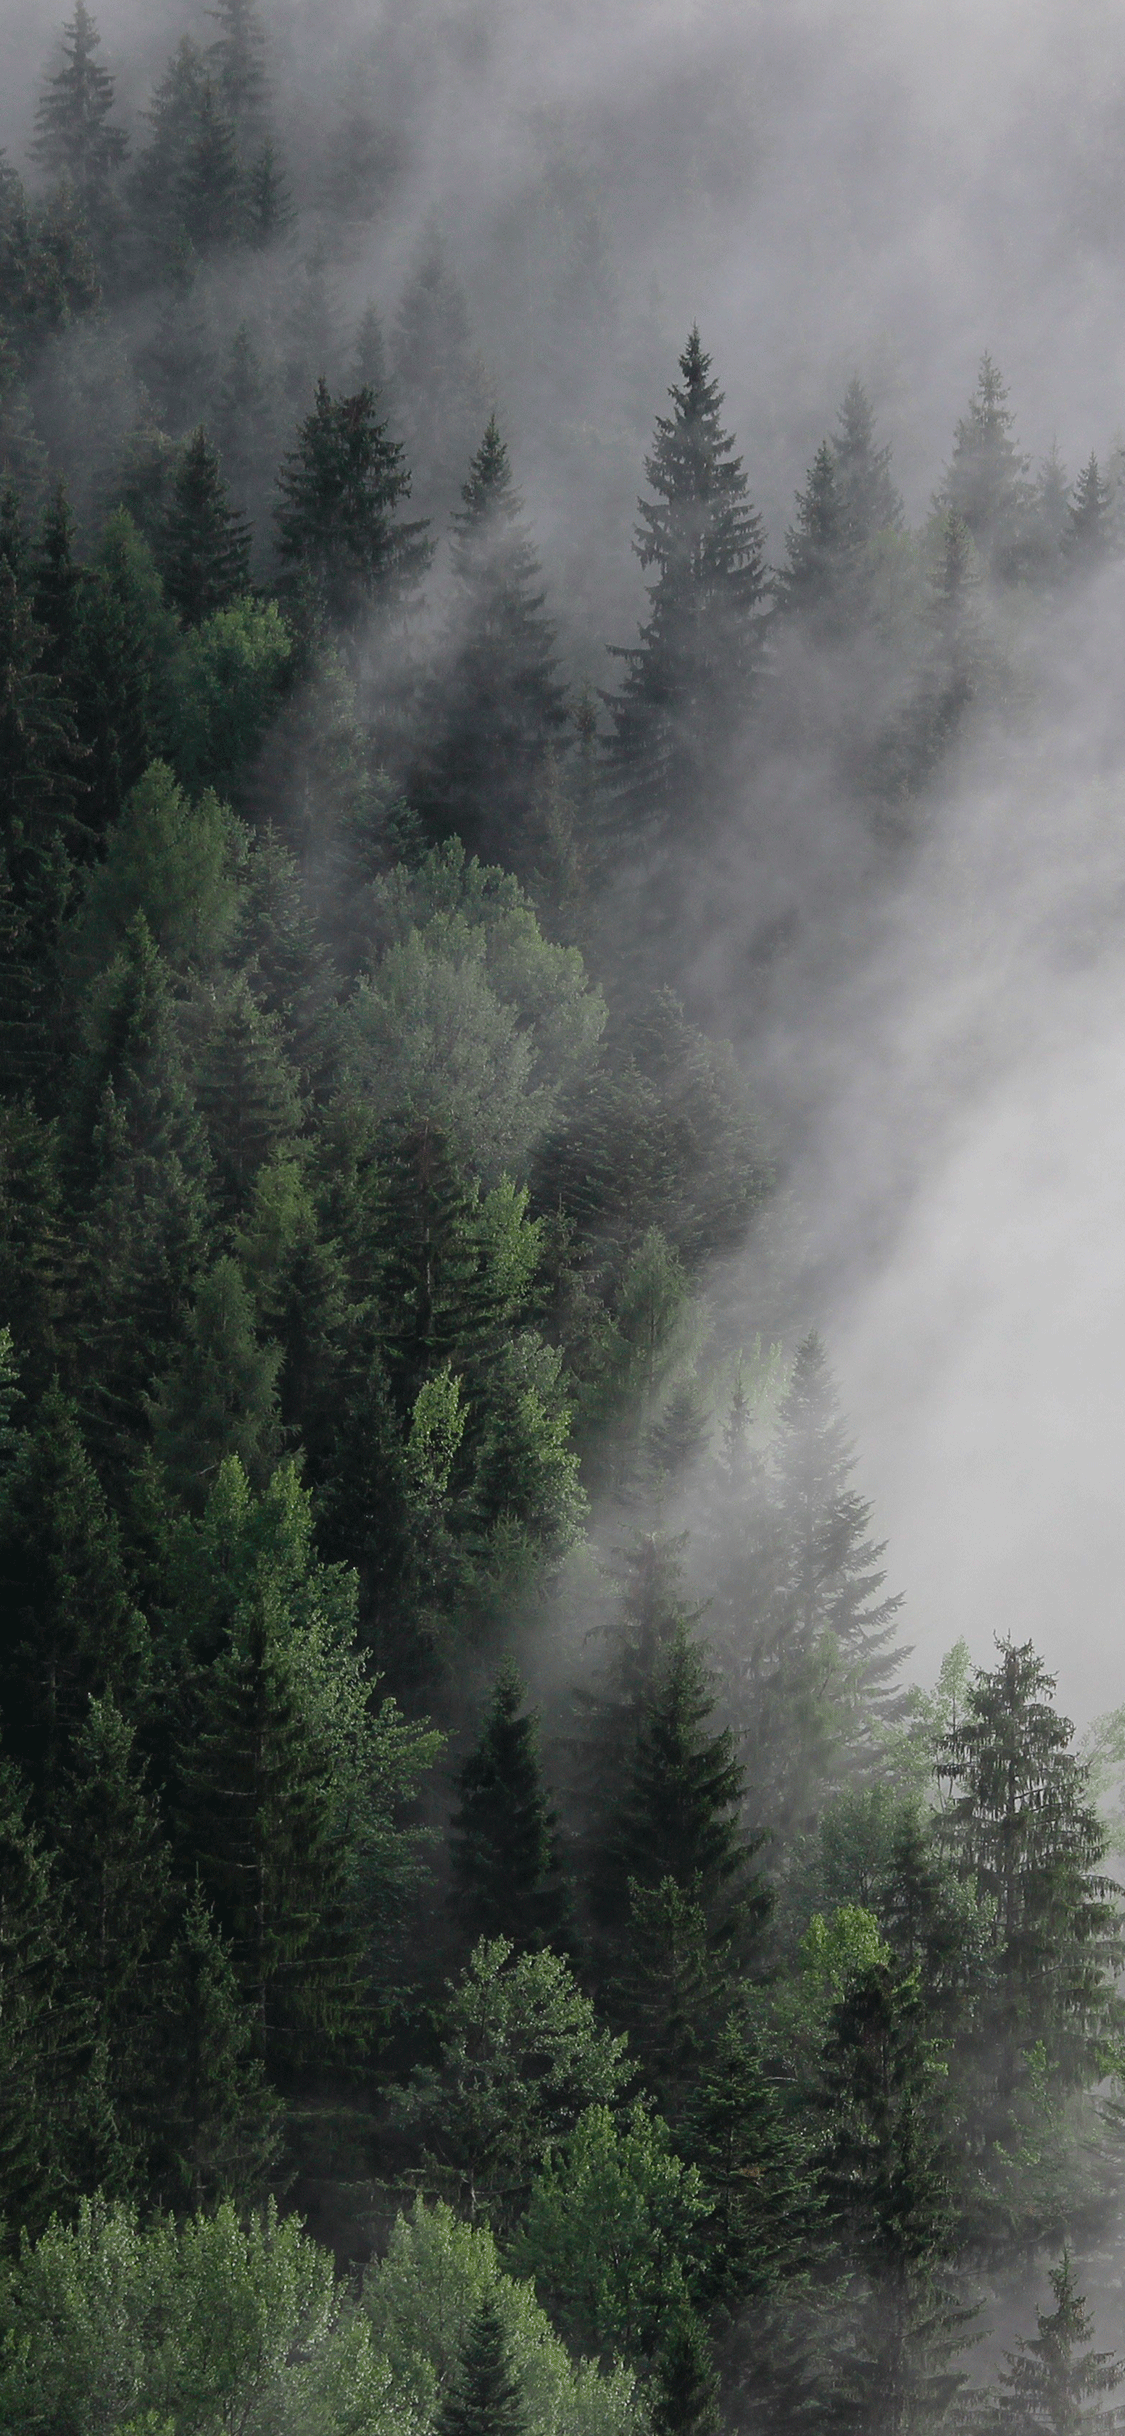 iPhone wallpaper forest fog Fonds d'écran iPhone du 10/07/2018